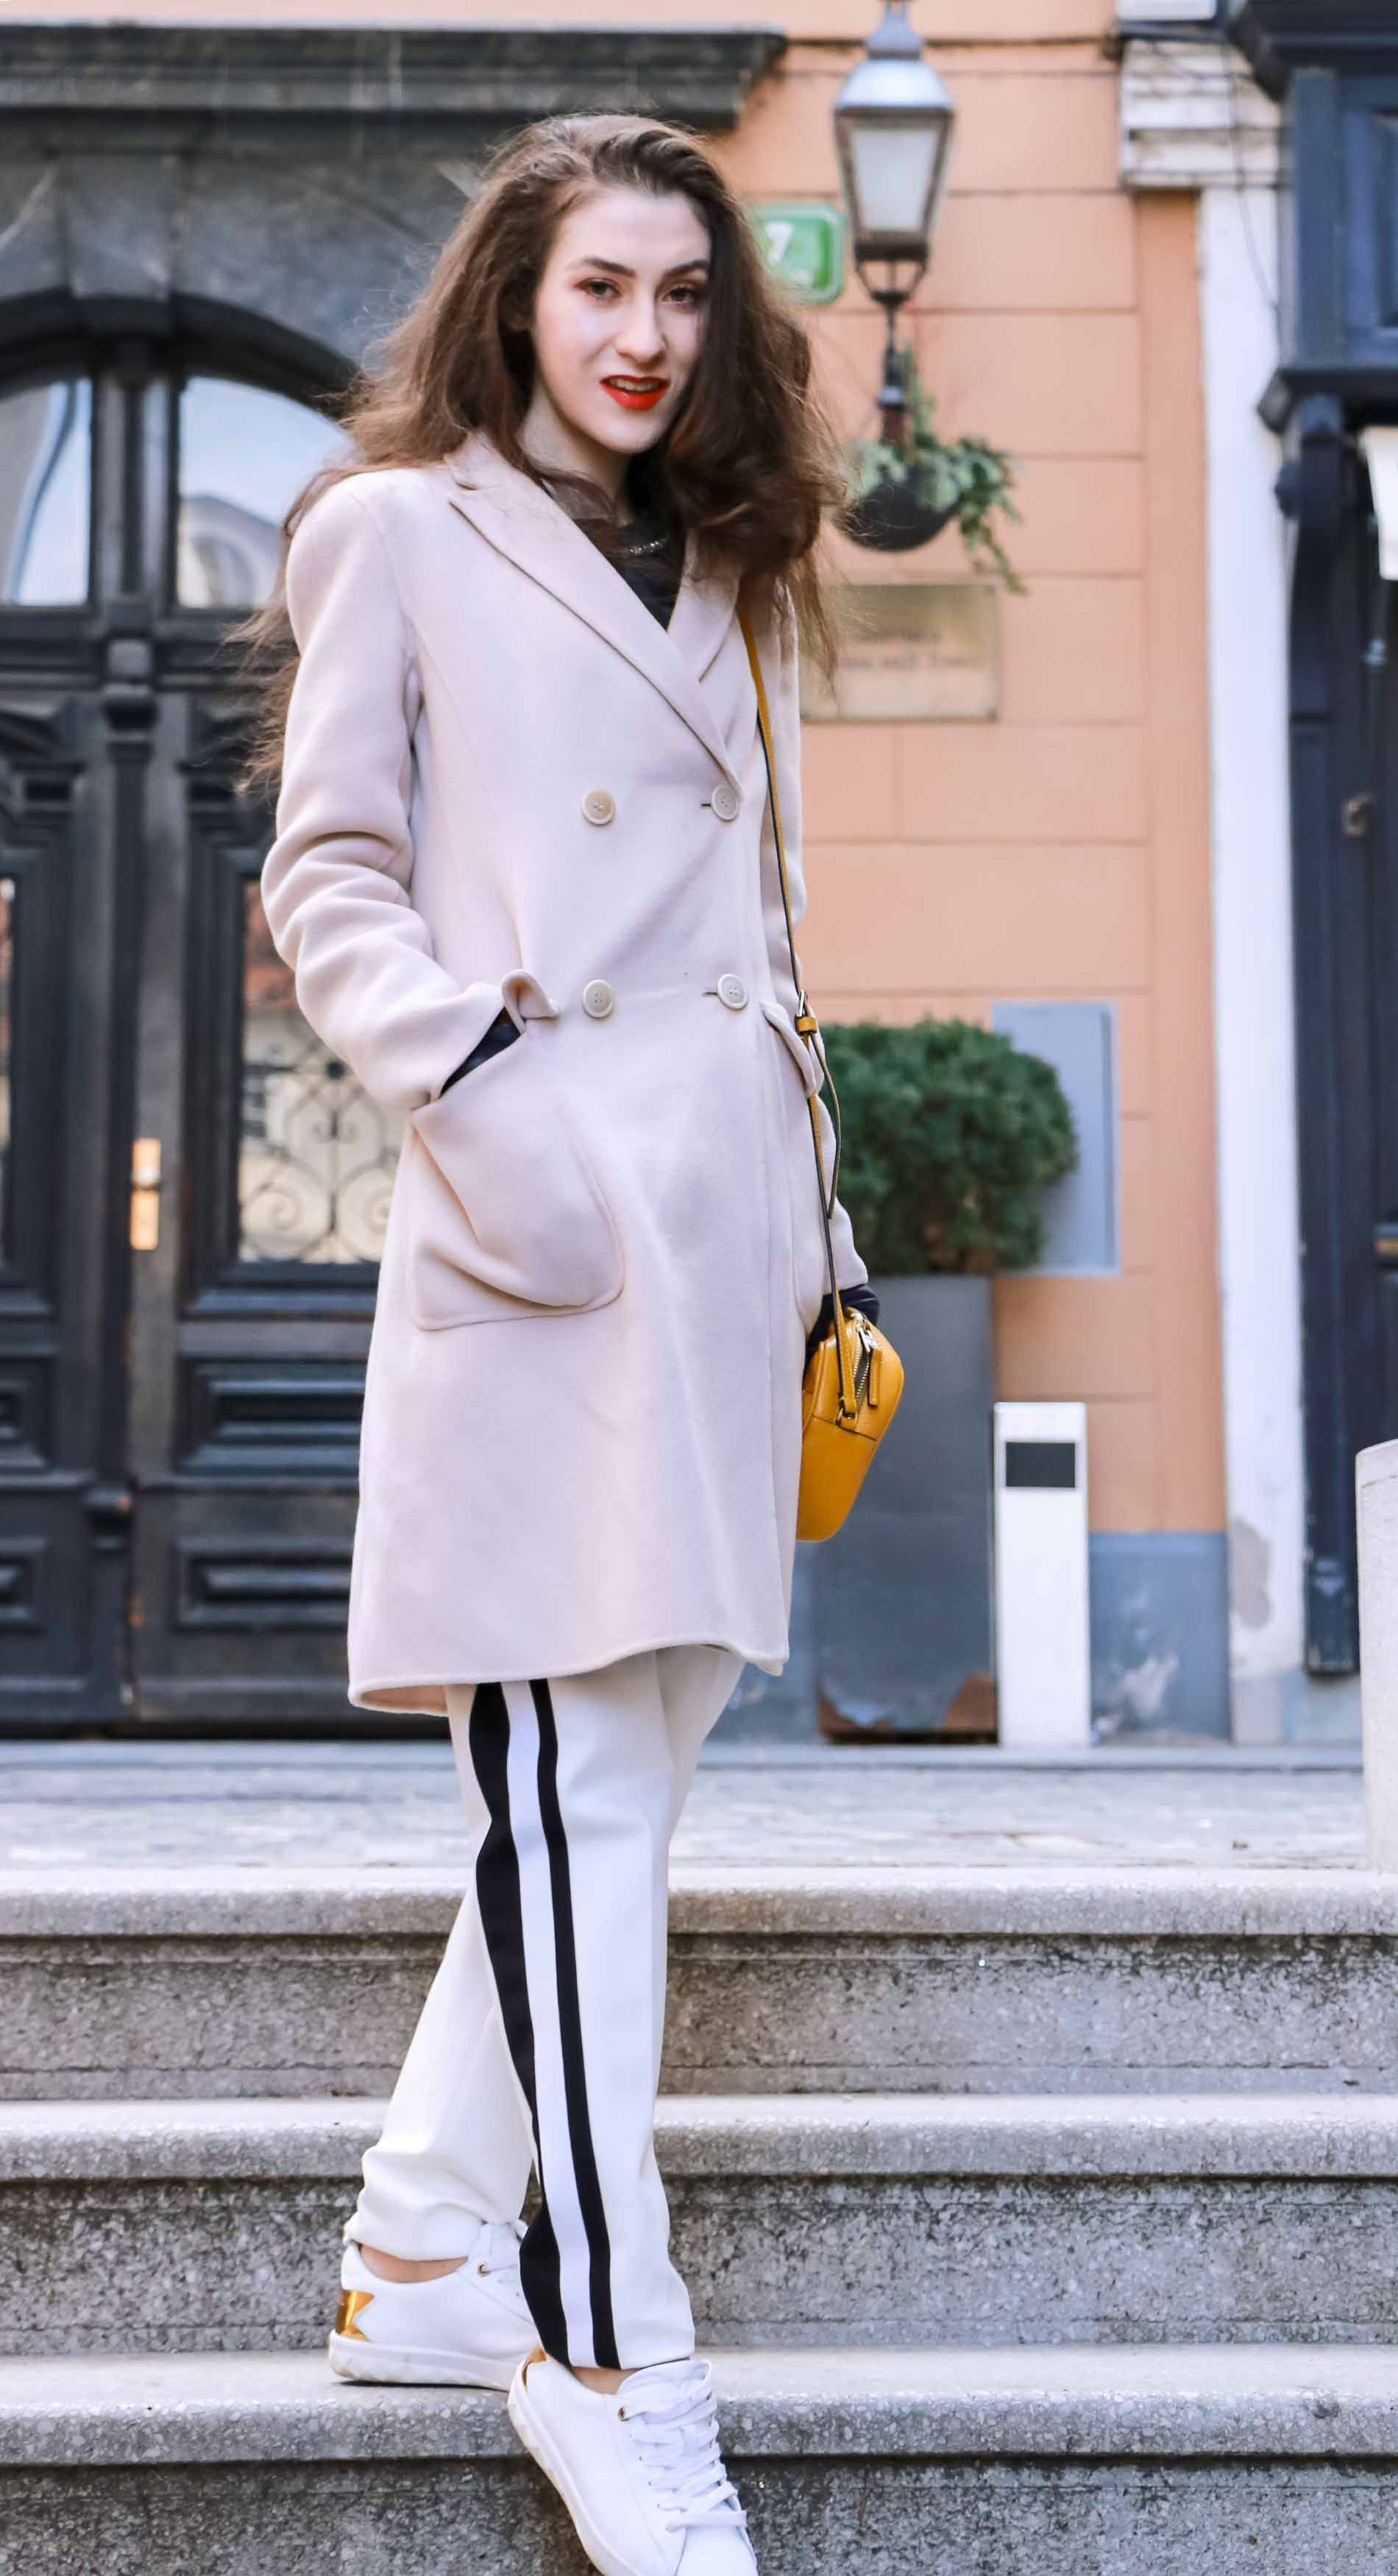 Fashion Blogger Veronika Lipar of Brunette from Wall Street wearing white track pants with black side stripe from Escada, black silk blouse, off-white pastel double breasted coat from Weekend Max Mara, white leather sneakers from Diesel, yellow shoulder bag from Escada while walking down the stairs in Ljubljana